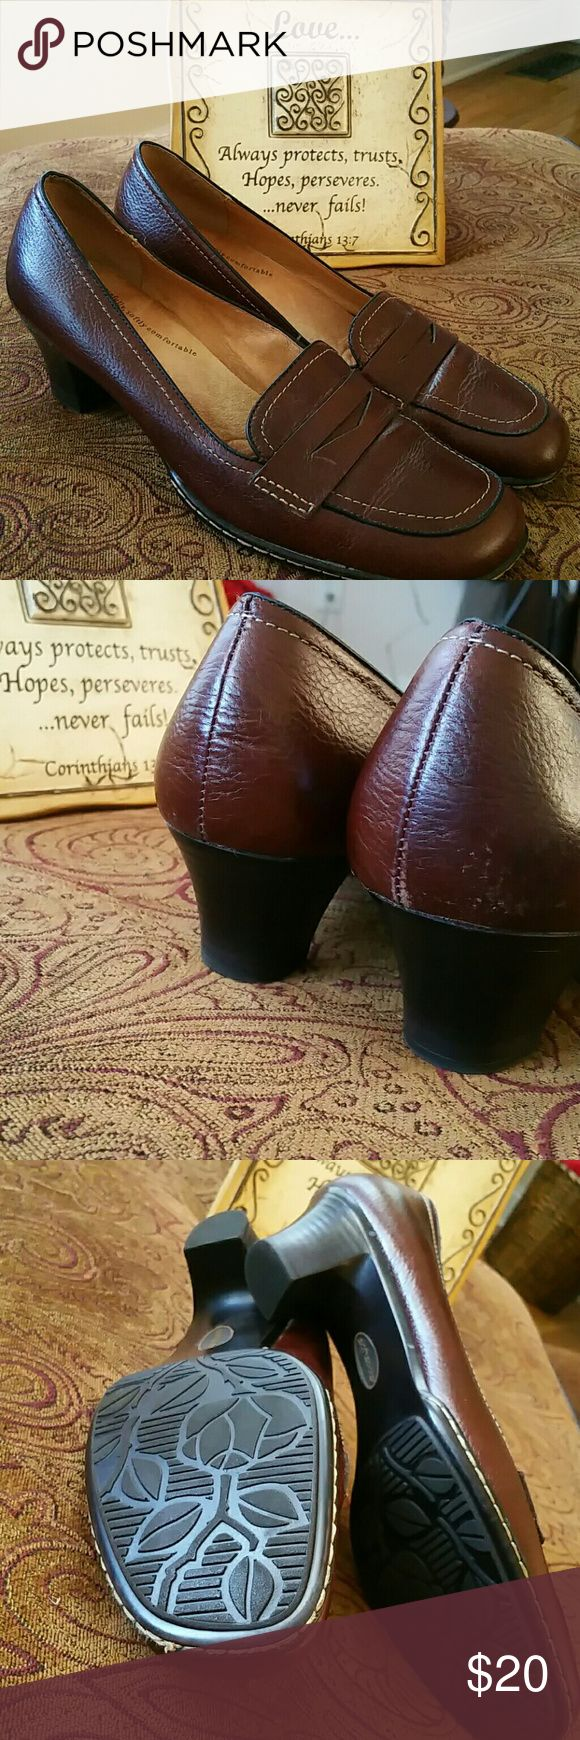 Brown leather low heel loafers Softspots leather loafers. Extremely comfortable. EUC, great for work if you're on your feet a lot! softspots  Shoes Flats & Loafers